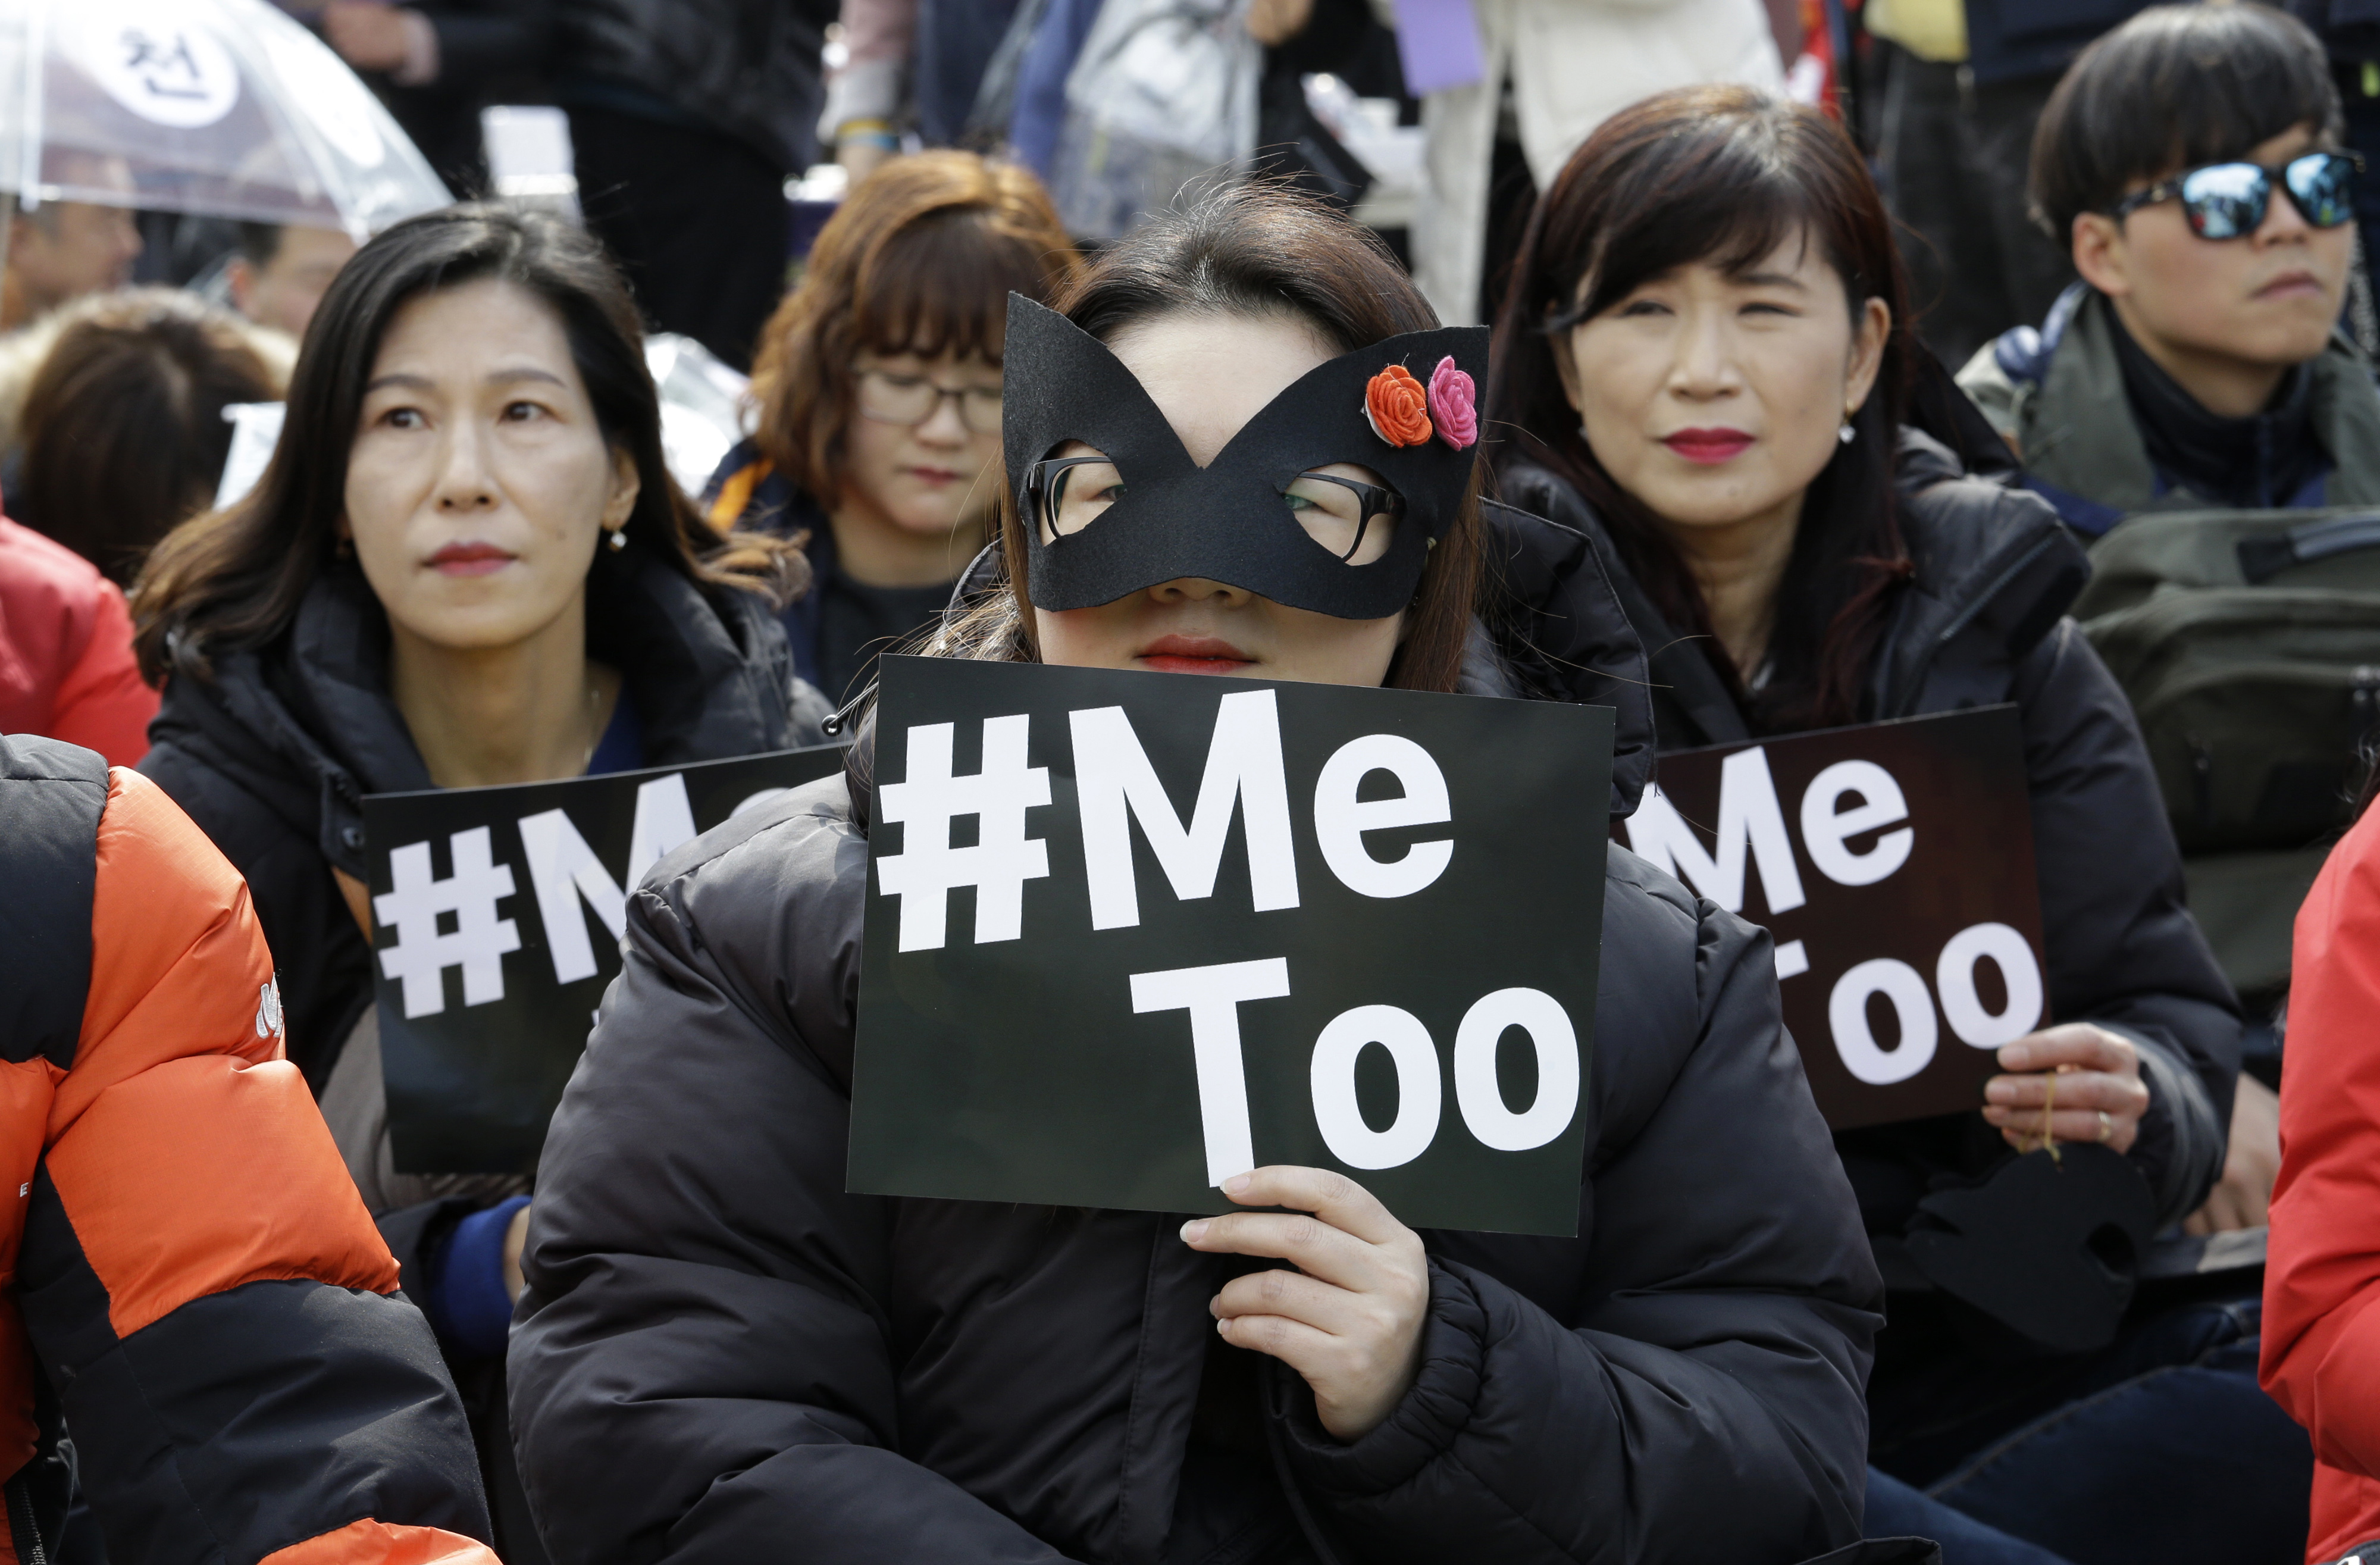 Female workers supporting the MeToo movement wearing black attend a rally to mark the International Women's Day in Seoul, South Korea, Thursday, March 8, 2018. (AP Photo/Ahn Young-joon)